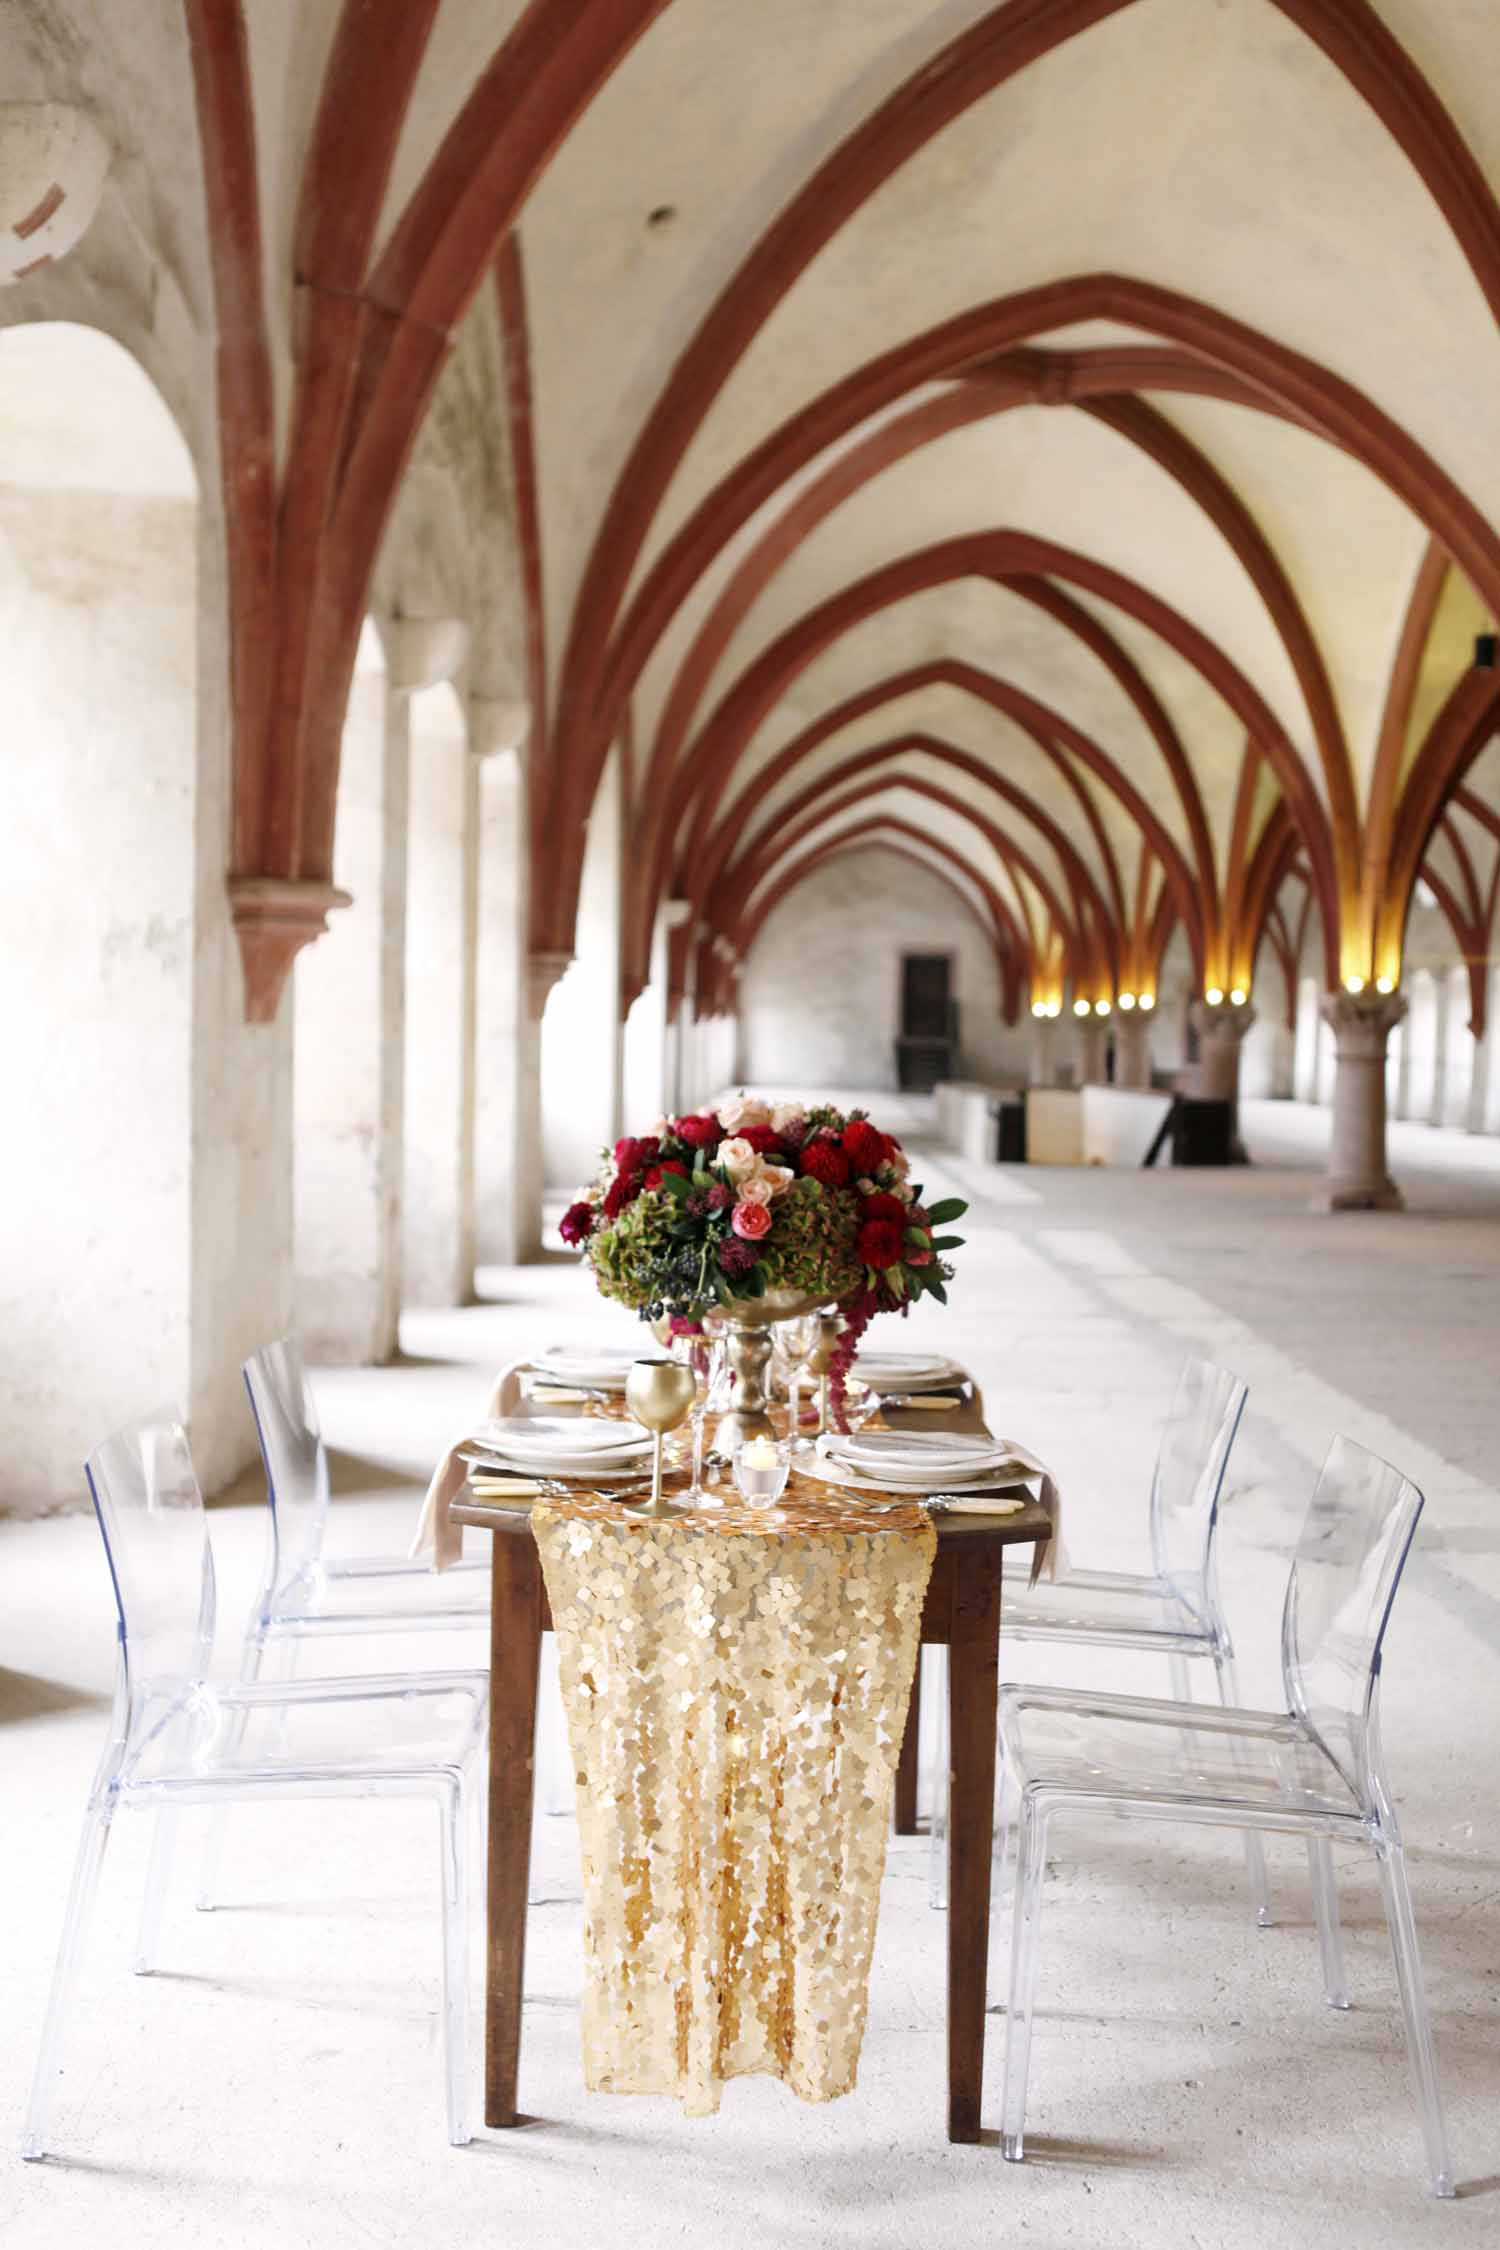 Vintage wooden table inside historic building for Wedding Style Shoot in Kloster Eberbach, Germany, designed by Flora Nova Design, Seattle